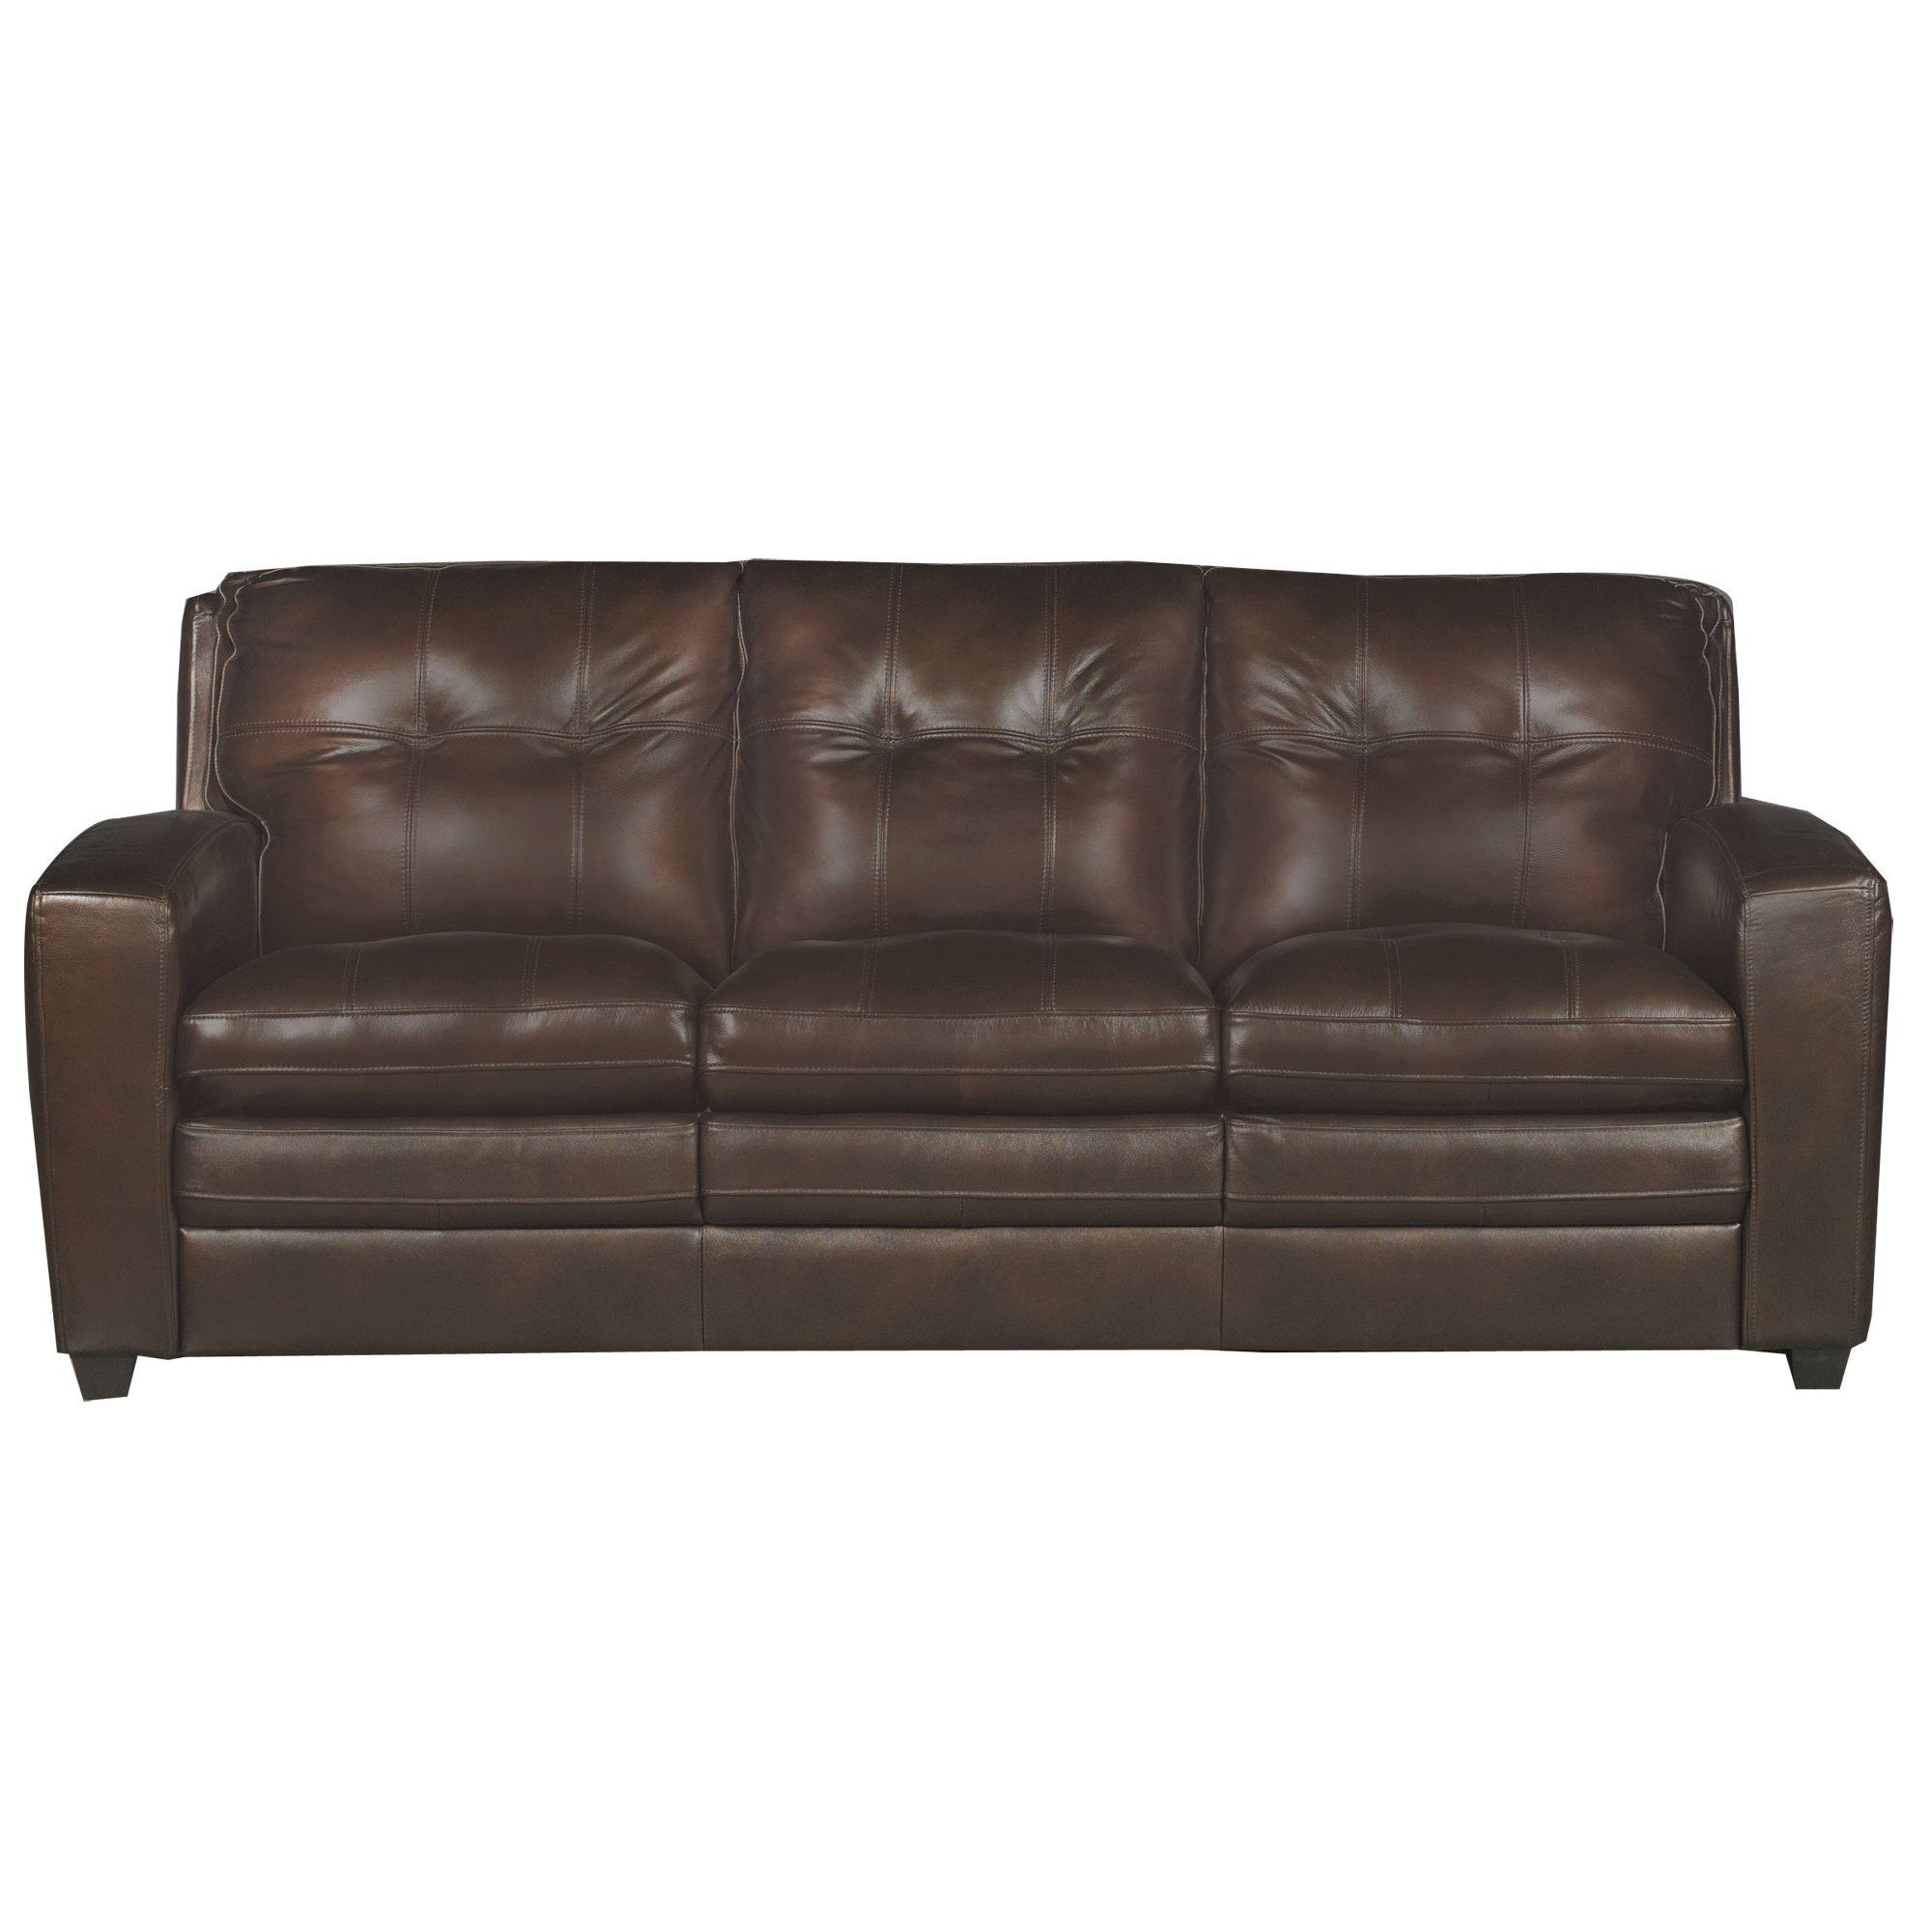 Strange Contemporary Brown Leather Sofa Bed Roland Design Ideas Beatyapartments Chair Design Images Beatyapartmentscom